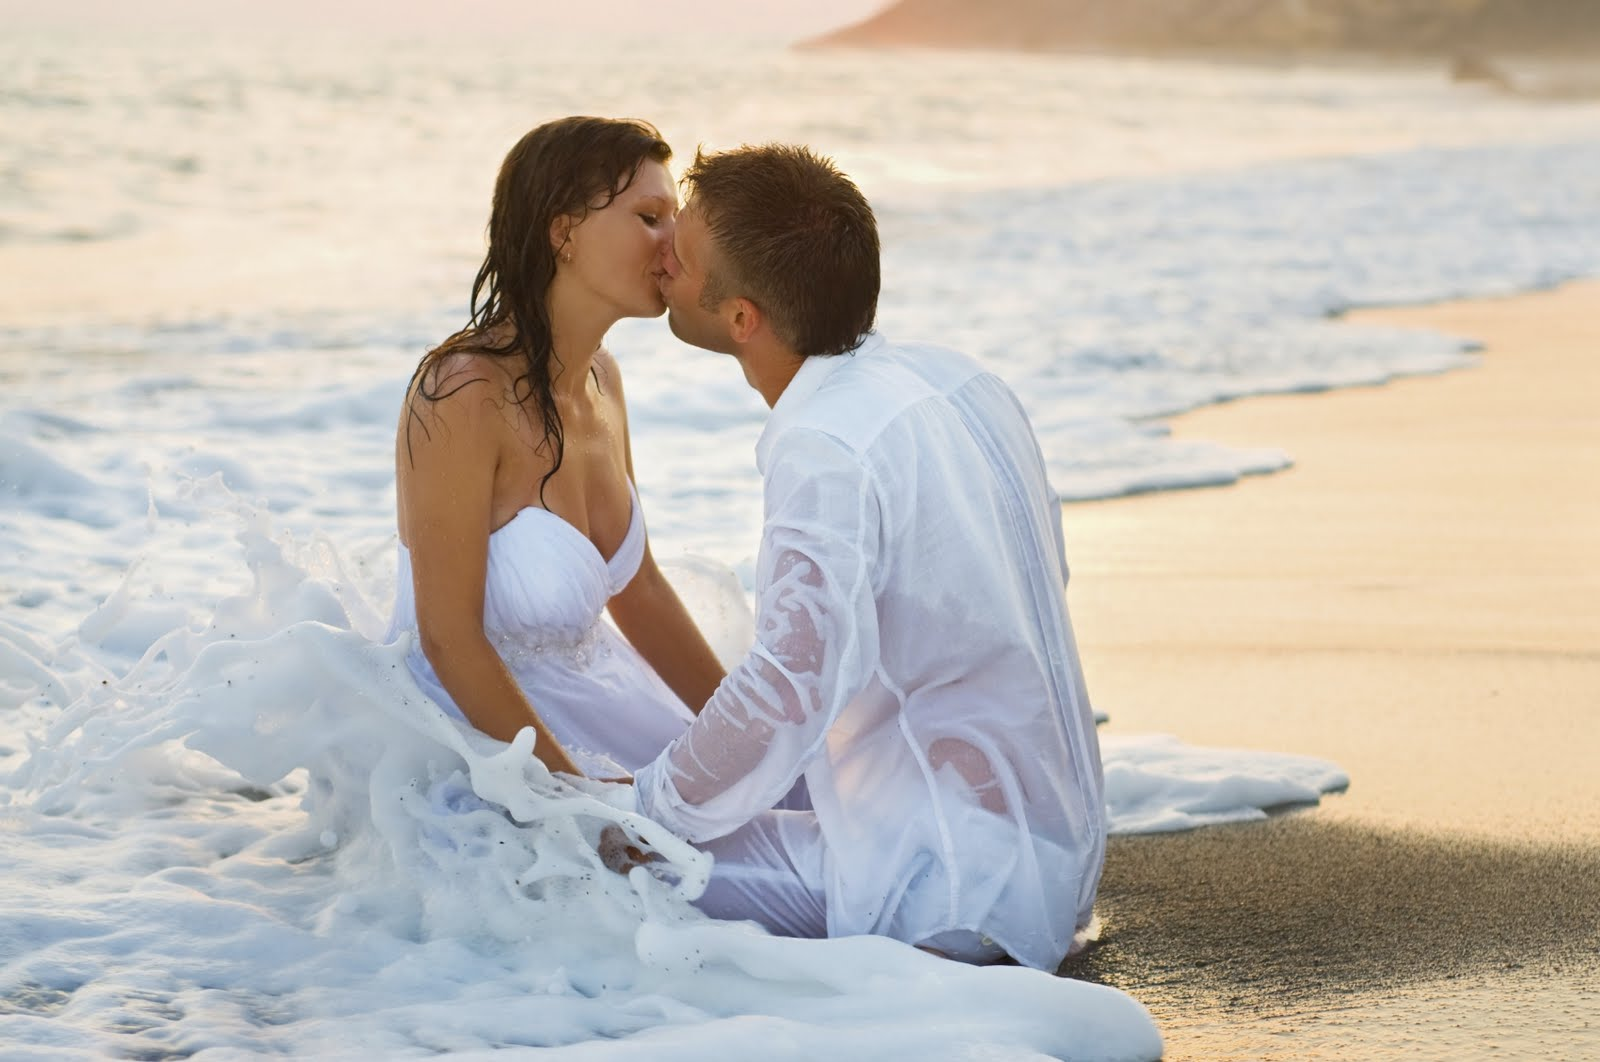 http://3.bp.blogspot.com/-j2AschpMwh0/UKeS9F9IbsI/AAAAAAAAI60/7zW50uY_fV8/s1600/Romantic+Kissing+hd+besktop+wallpapers.jpg